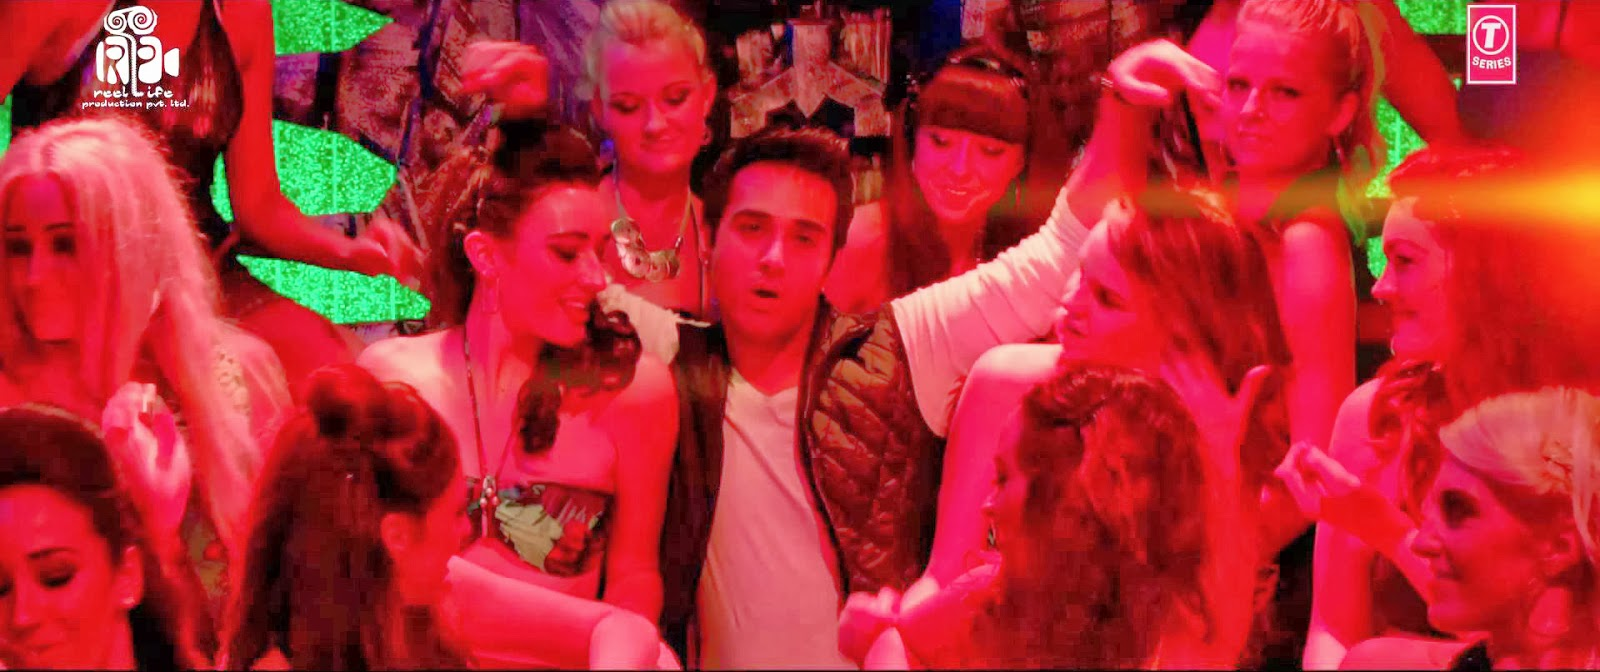 Butt Patlo - O Teri (2014) Full Music Video Song Free Download And Watch Online at worldfree4u.com